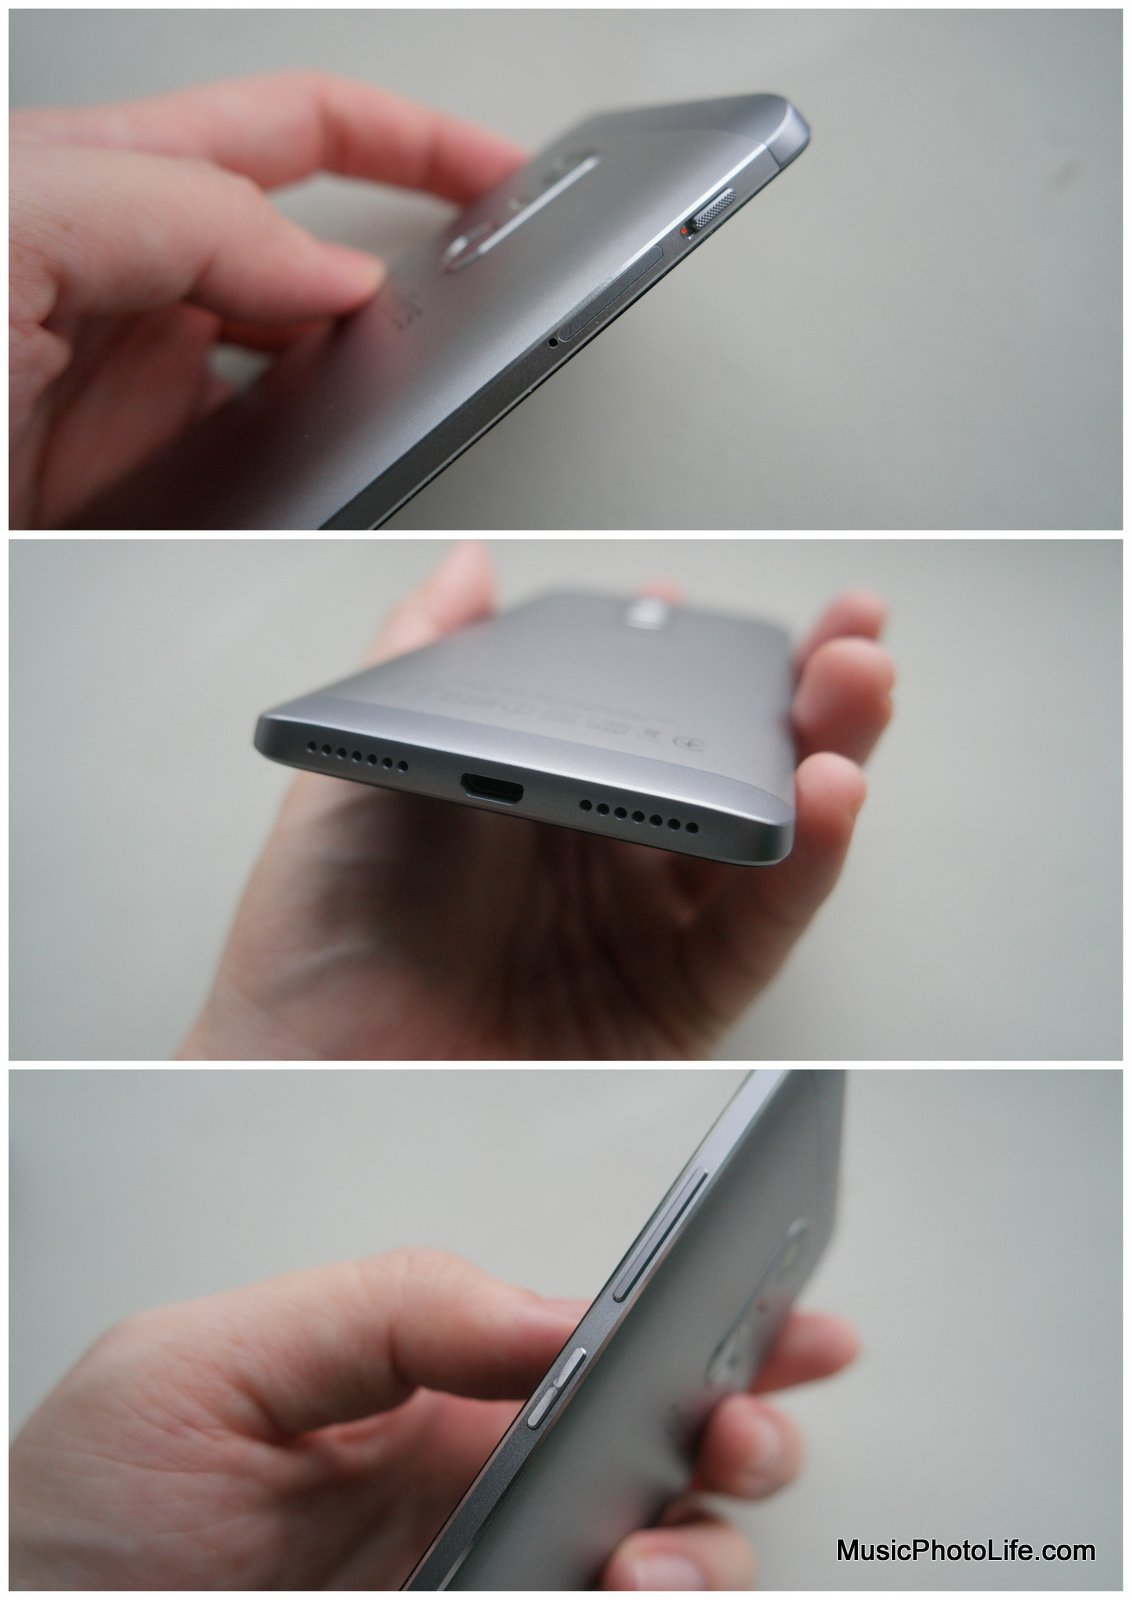 Neffos X1 details, review by Singapore tech blogger Chester Tan